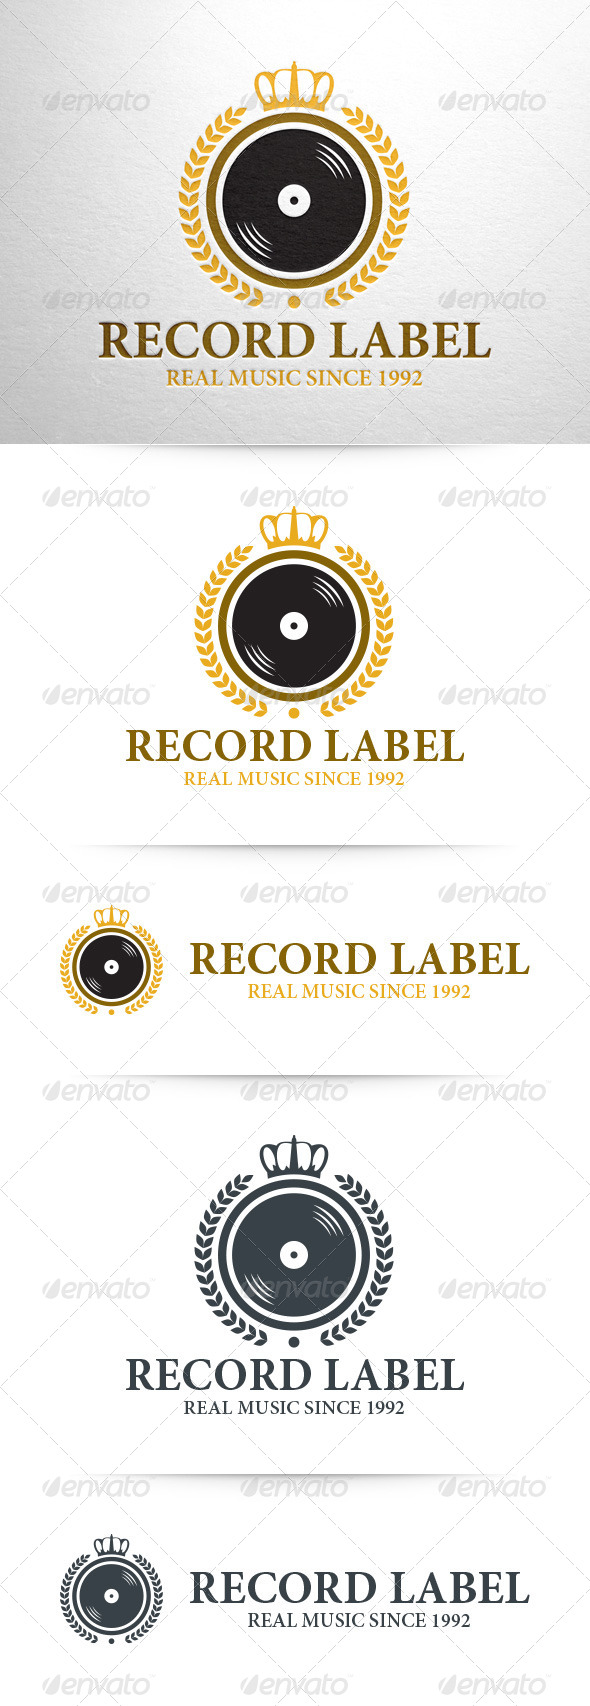 GraphicRiver Record Label Logo Template 8322506